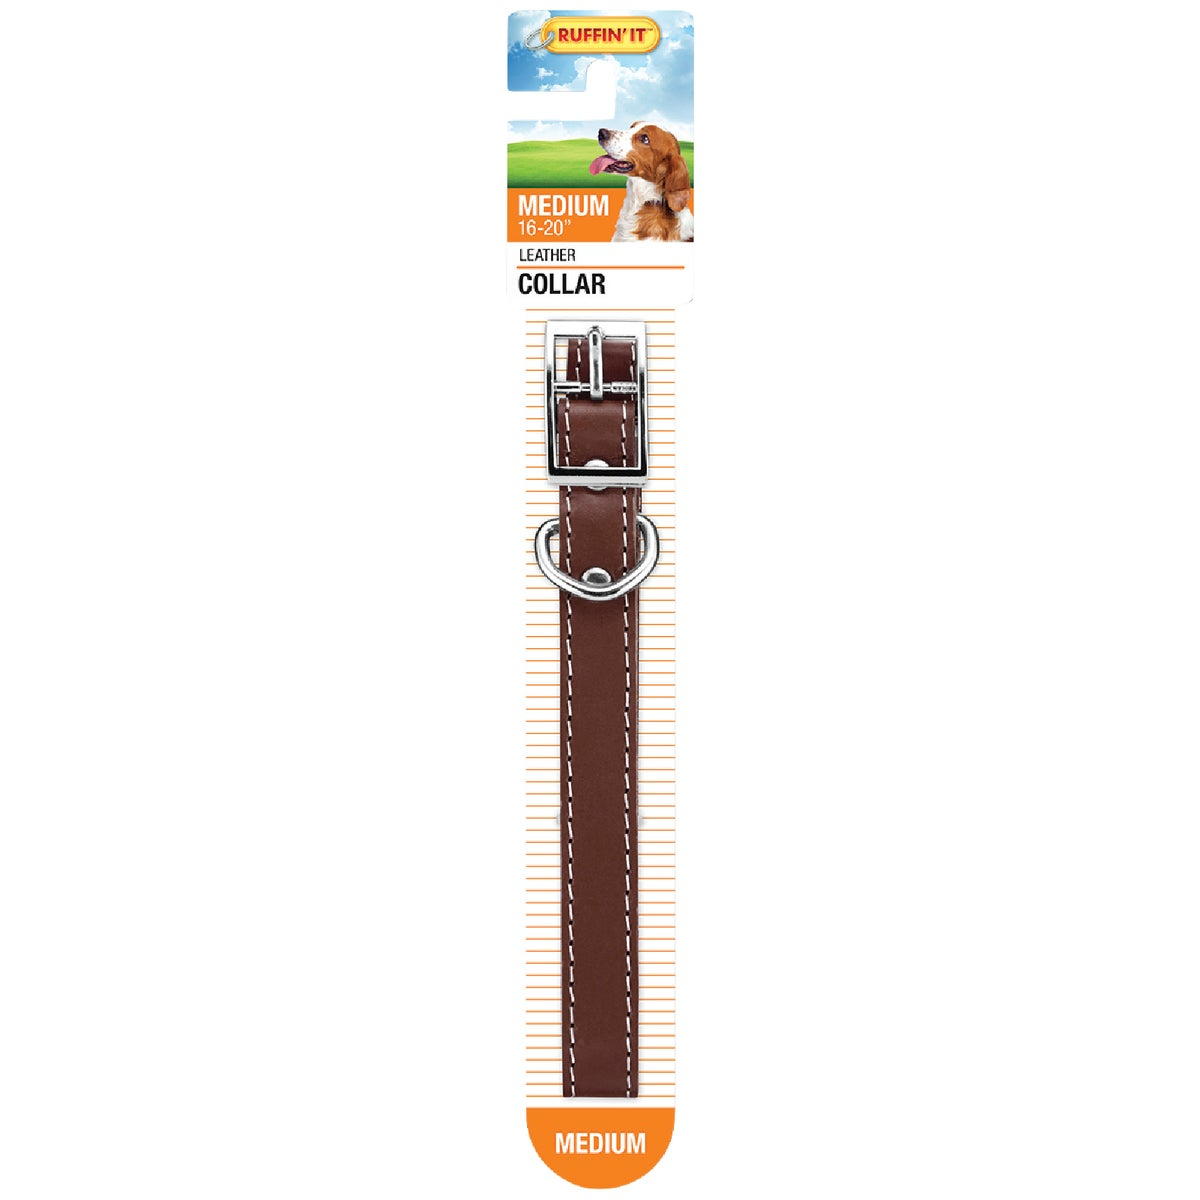 3/4X20 LTR HUNTNG COLLAR - 58620 by Westminster Pet